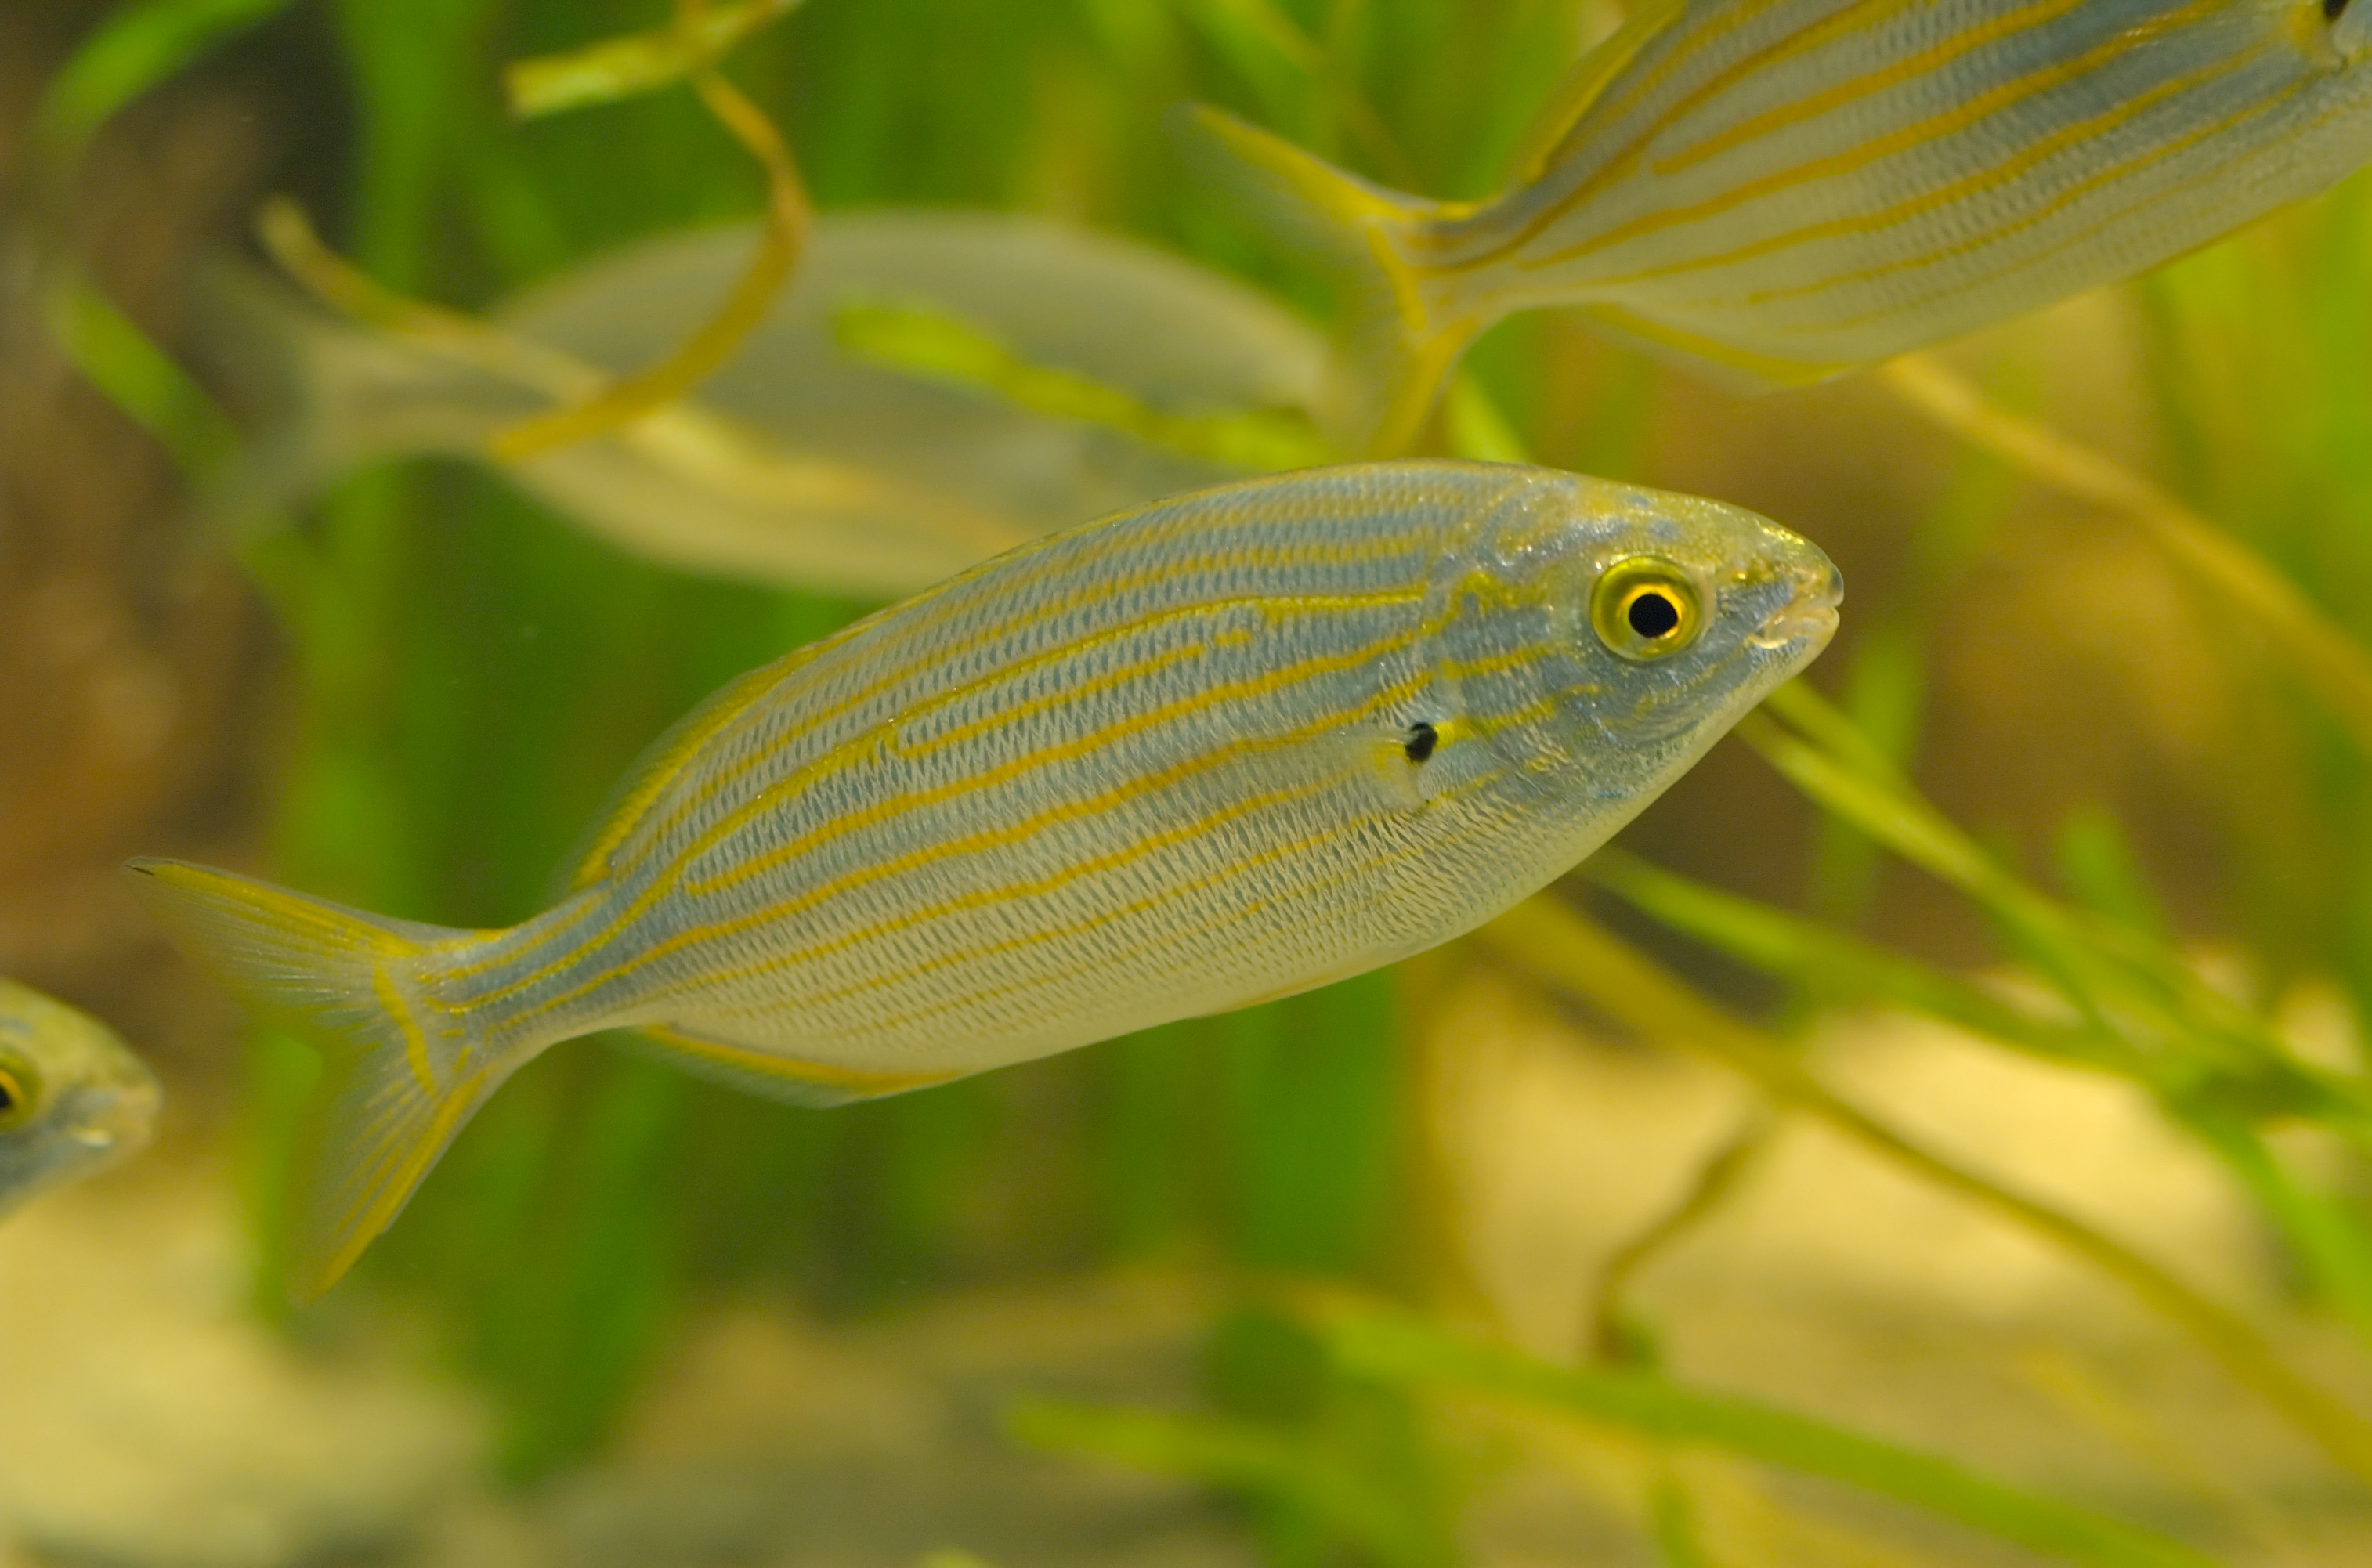 Meet The Hallucinogenic Fish That Can Give You Lsd Esque Nightmares Little Nighmares Region 3 Photo Tino Strauss Cc By Sa 30